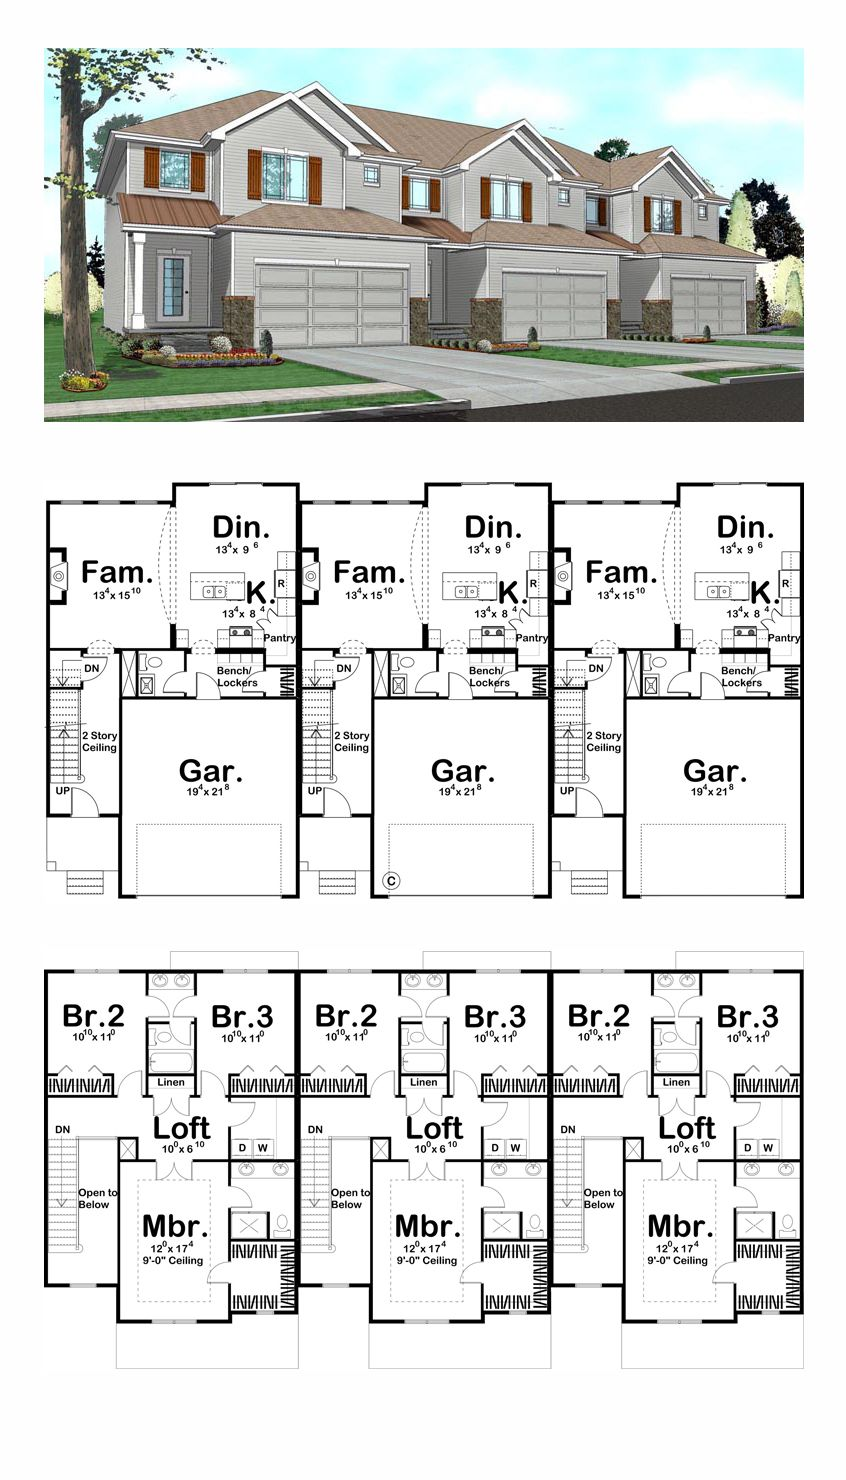 Best 25 duplex floor plans ideas on pinterest duplex for Best duplex plans